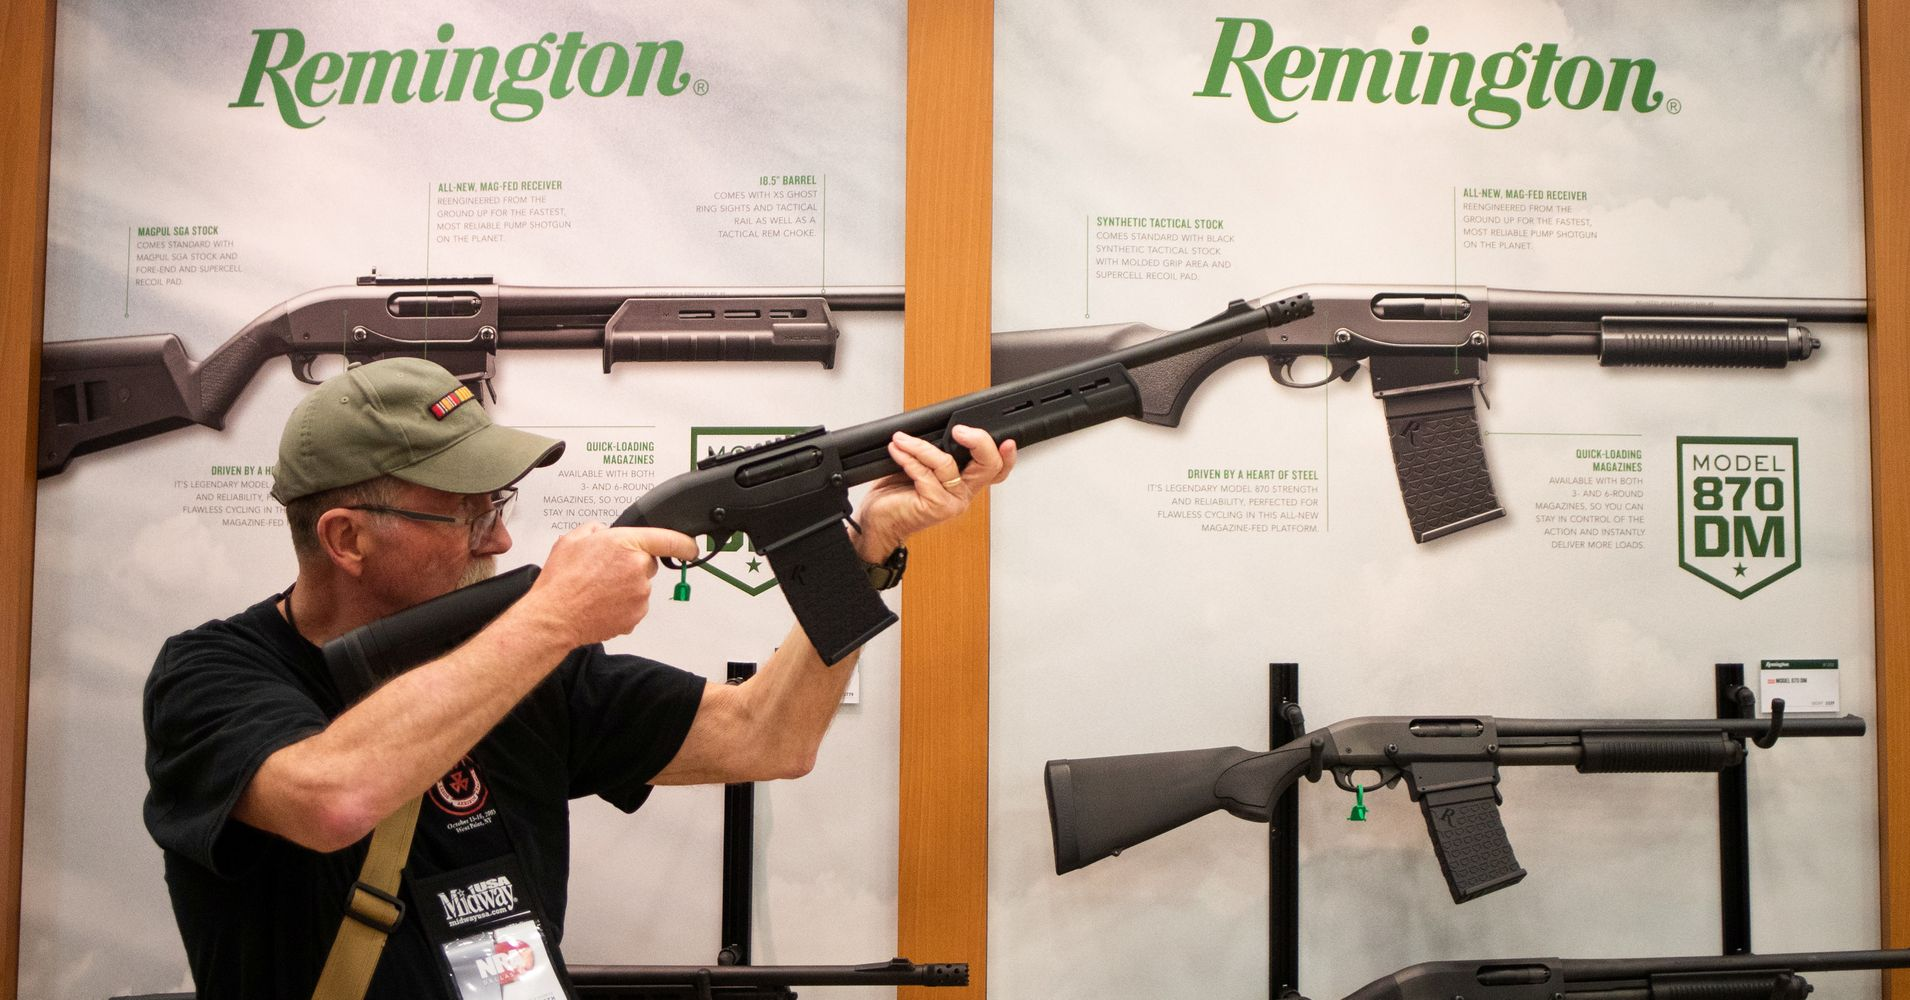 Bank Of America Appears To Flip On Firearm Promise With Loan To Remington |  HuffPost